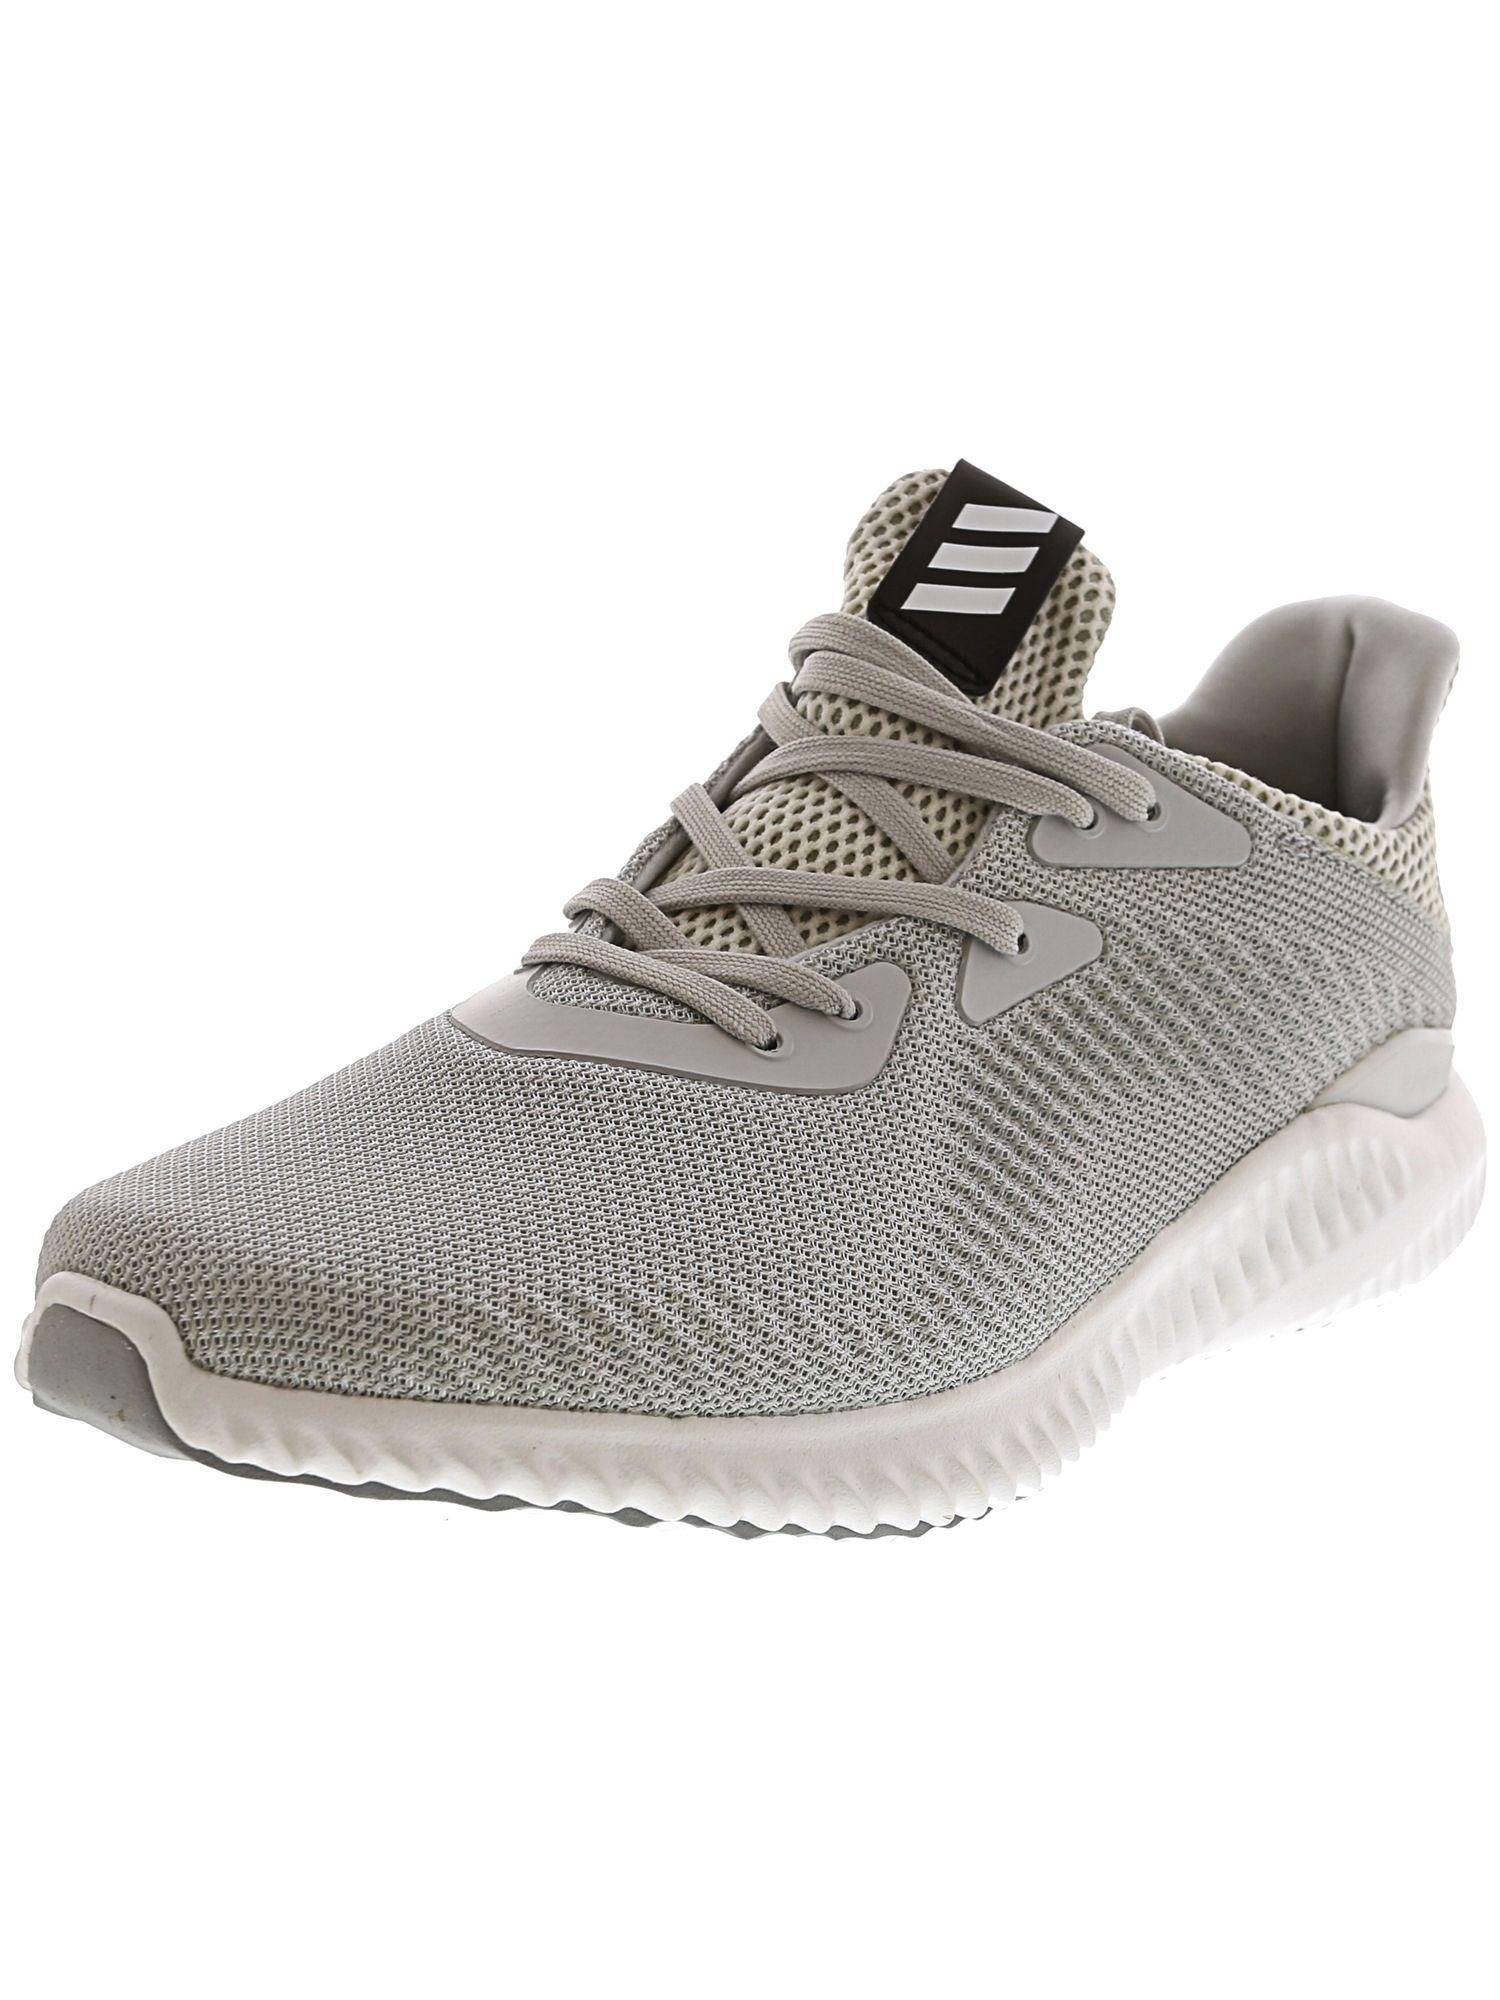 d57962a685a7 Lyst - Adidas Men's Alphabounce 1 Ankle-high Mesh Running Shoe in ...